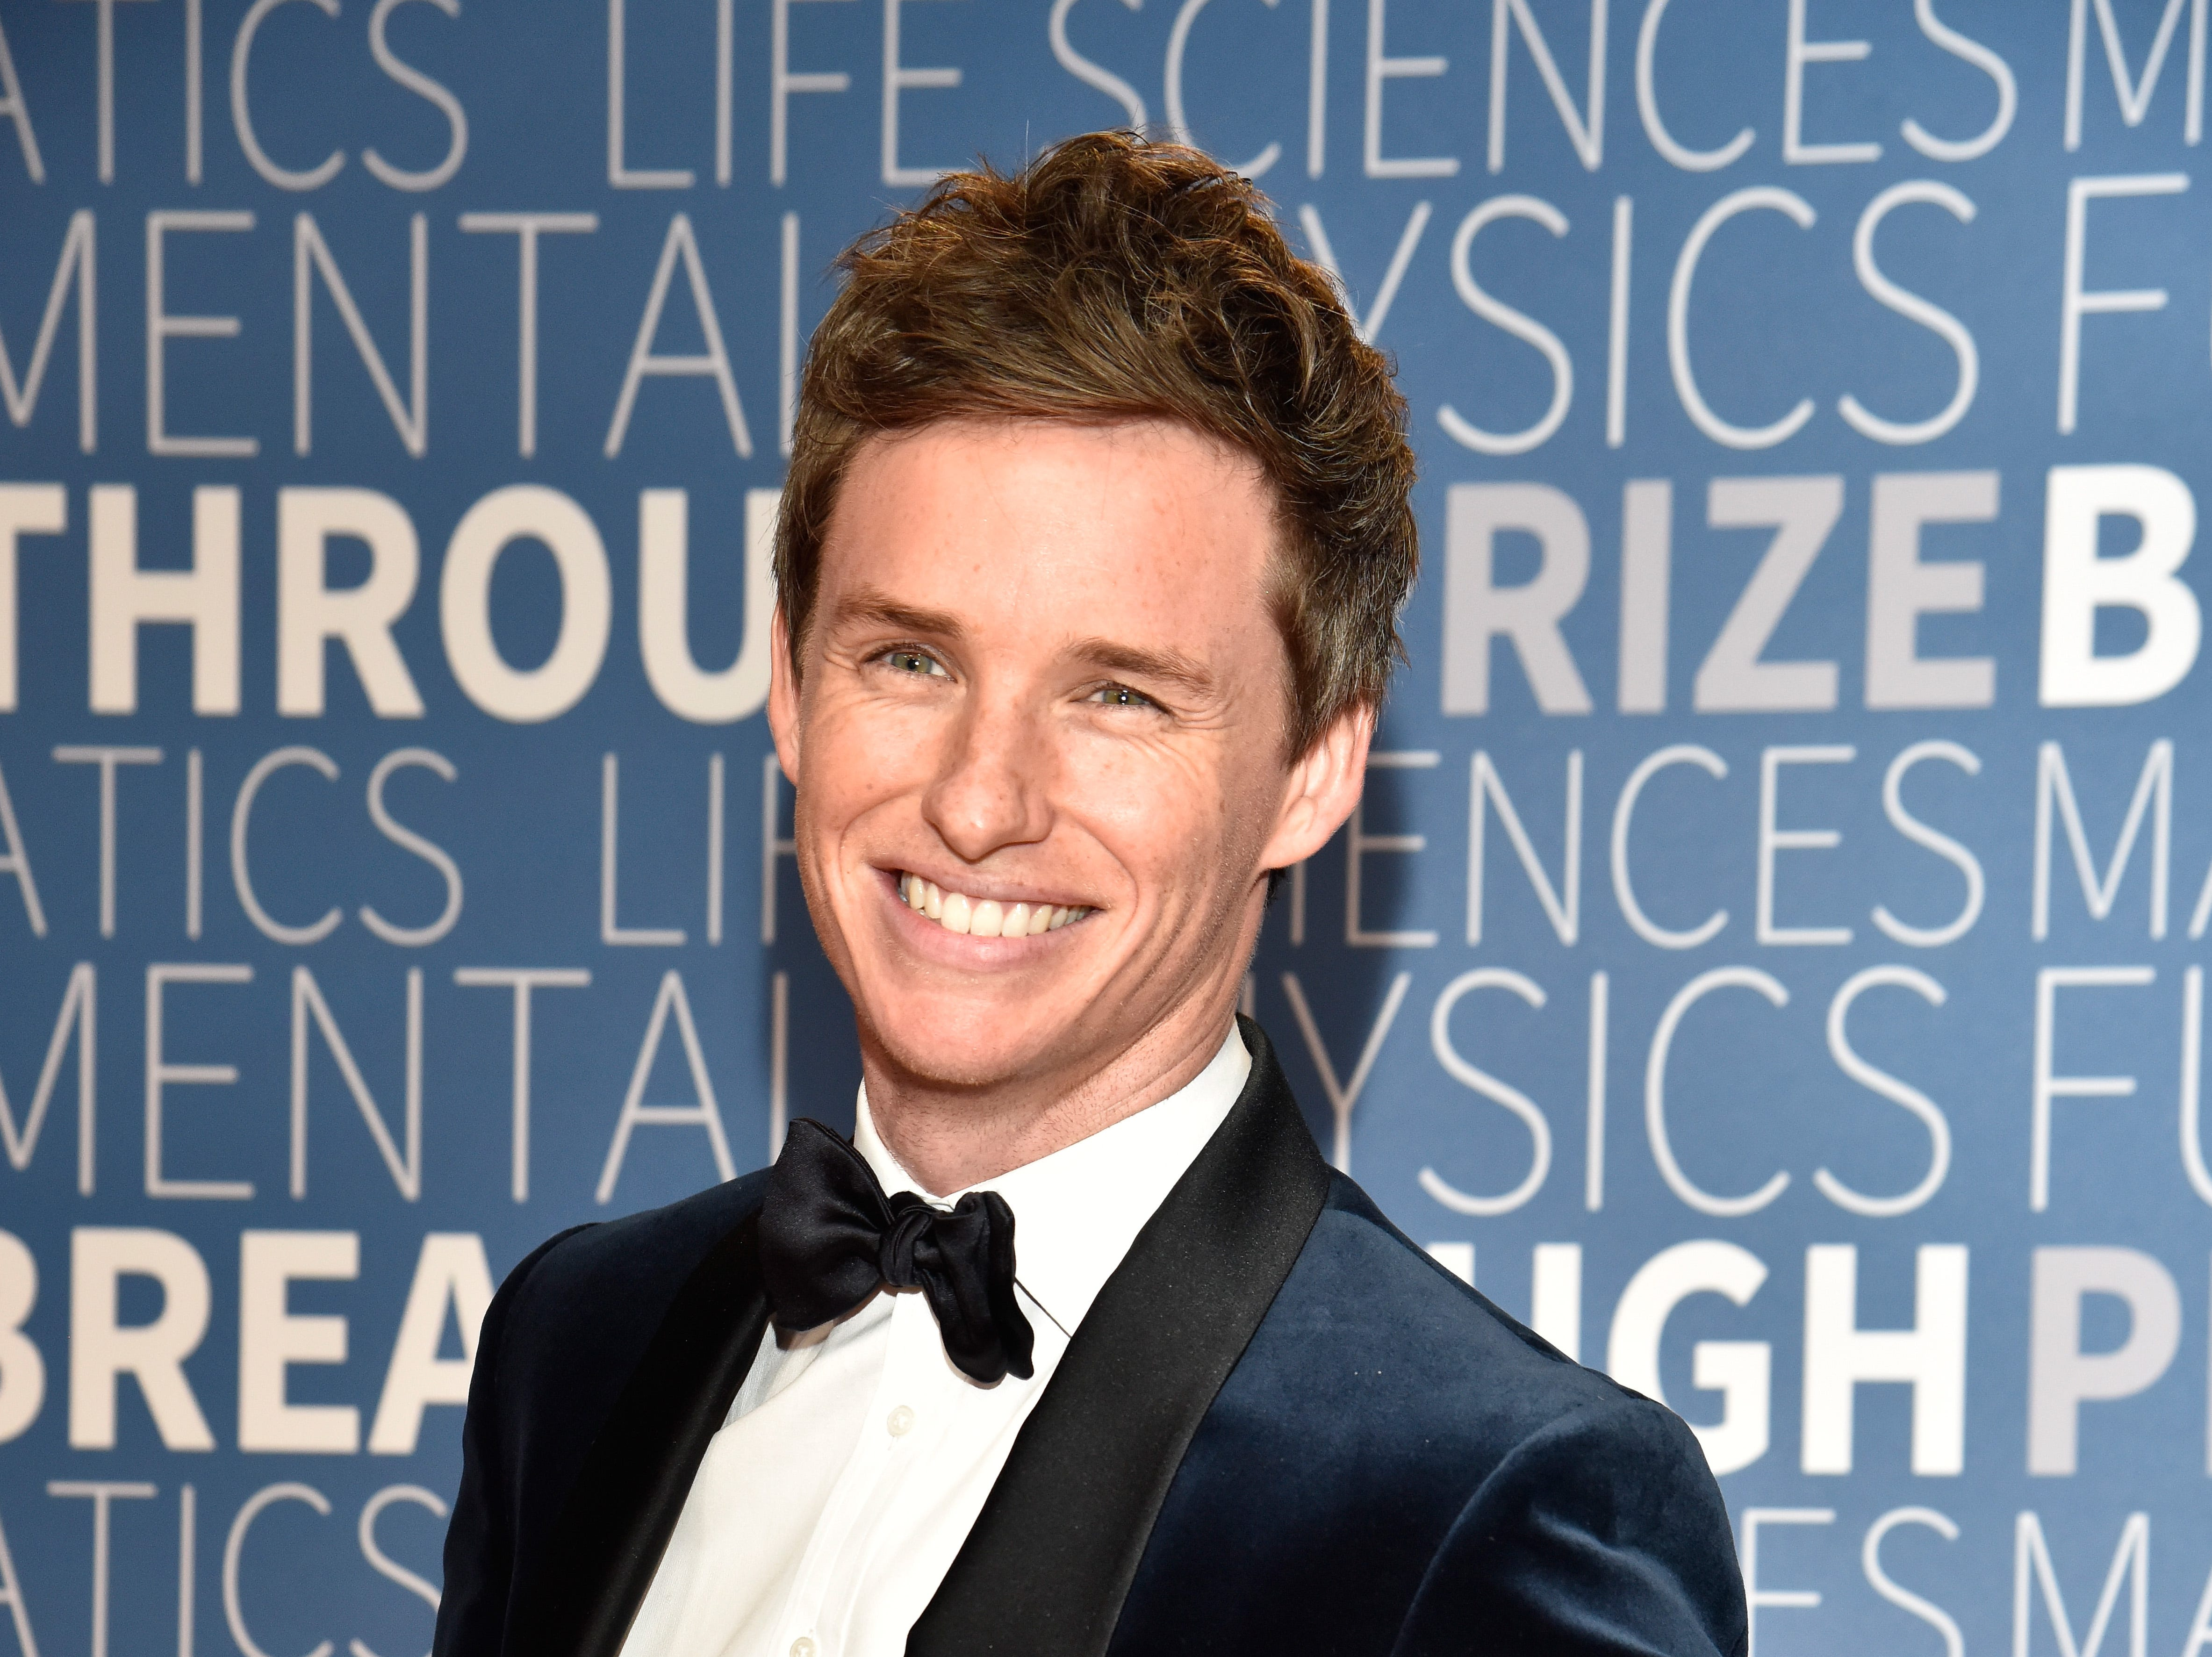 MOUNTAIN VIEW, CA - NOVEMBER 04:  Eddie Redmayne attends the 2019 Breakthrough Prize at NASA Ames Research Center on November 4, 2018 in Mountain View, California.  (Photo by Tim Mosenfelder/Getty Images for Breakthrough Prize) ORG XMIT: 775252235 ORIG FILE ID: 1057534110